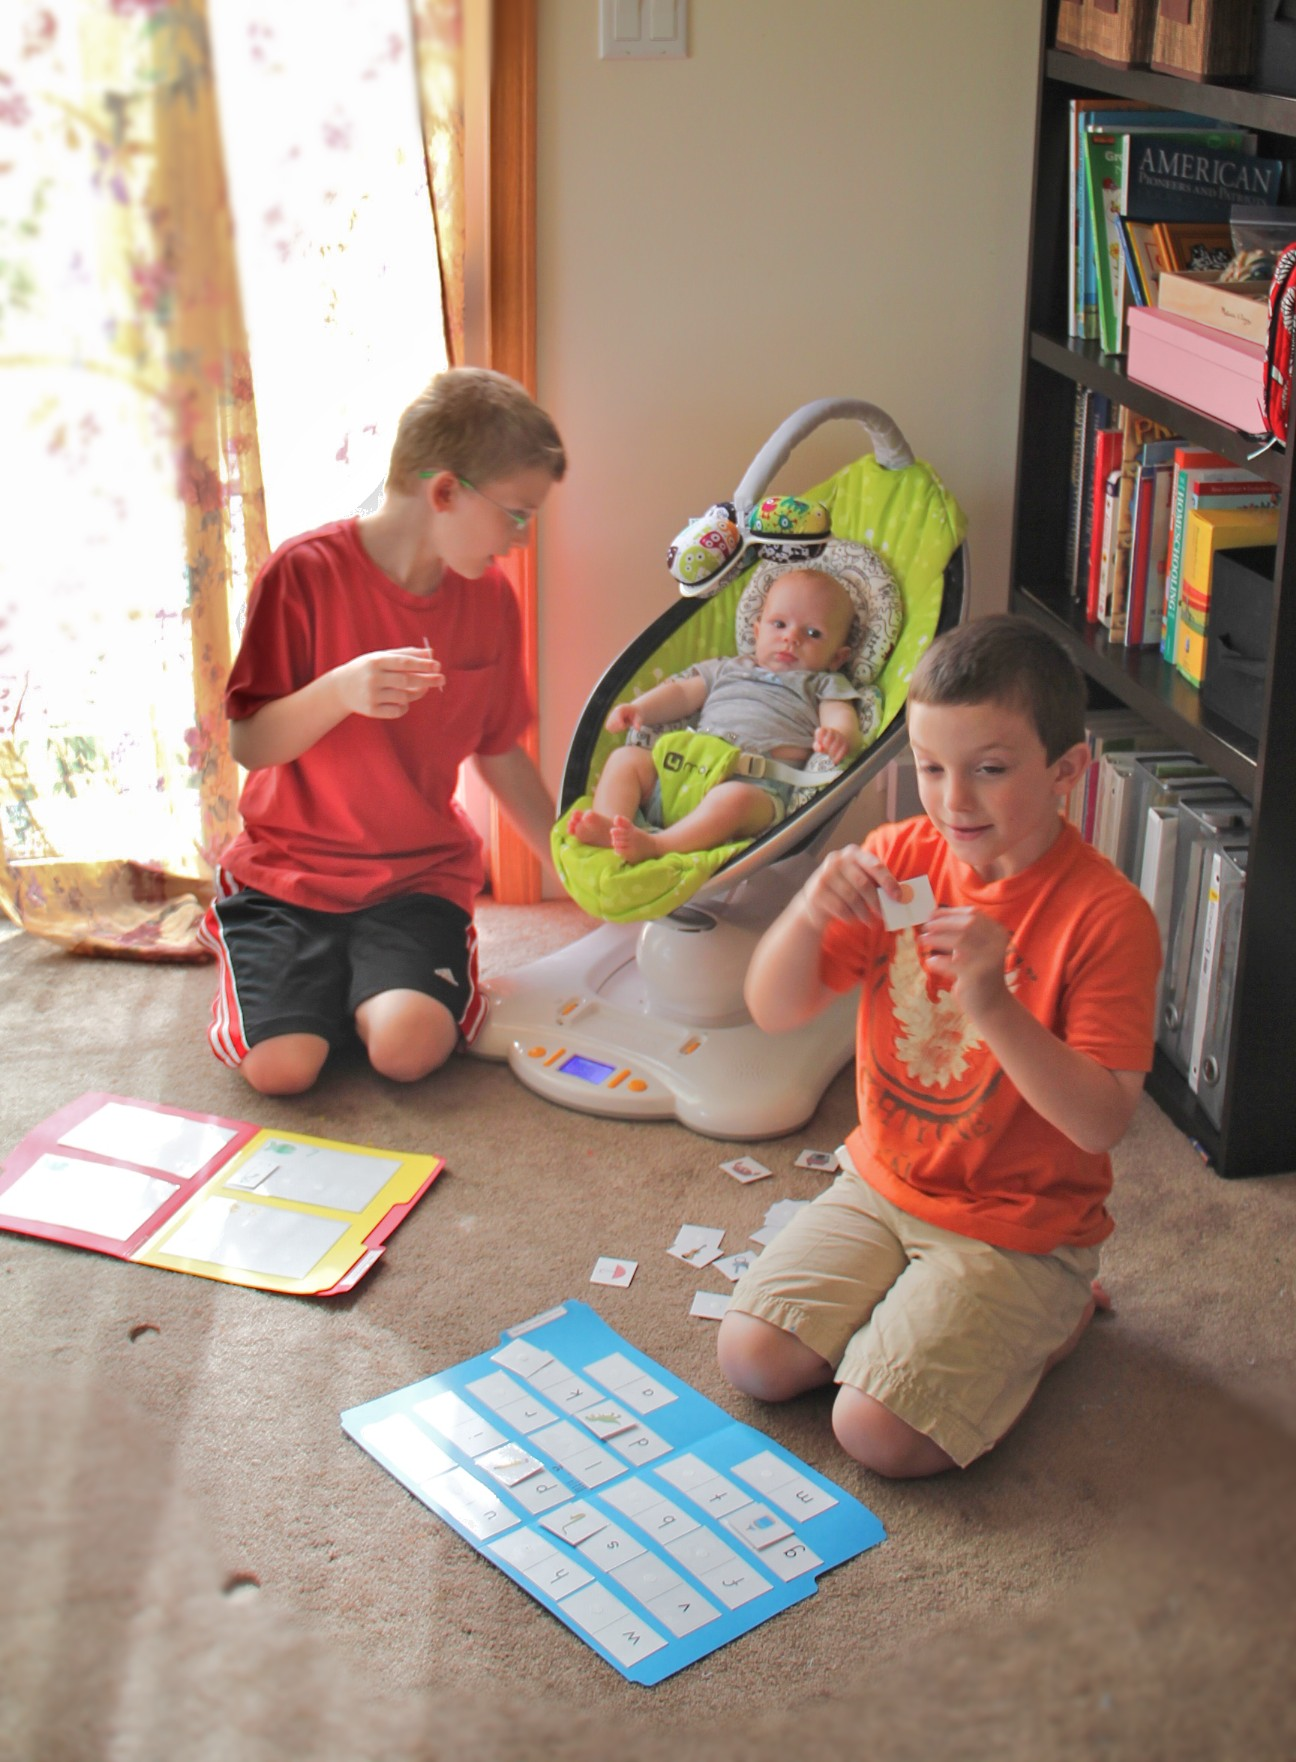 Our Homeschool Day with File Folder Games #iHN @DinkerGiggles